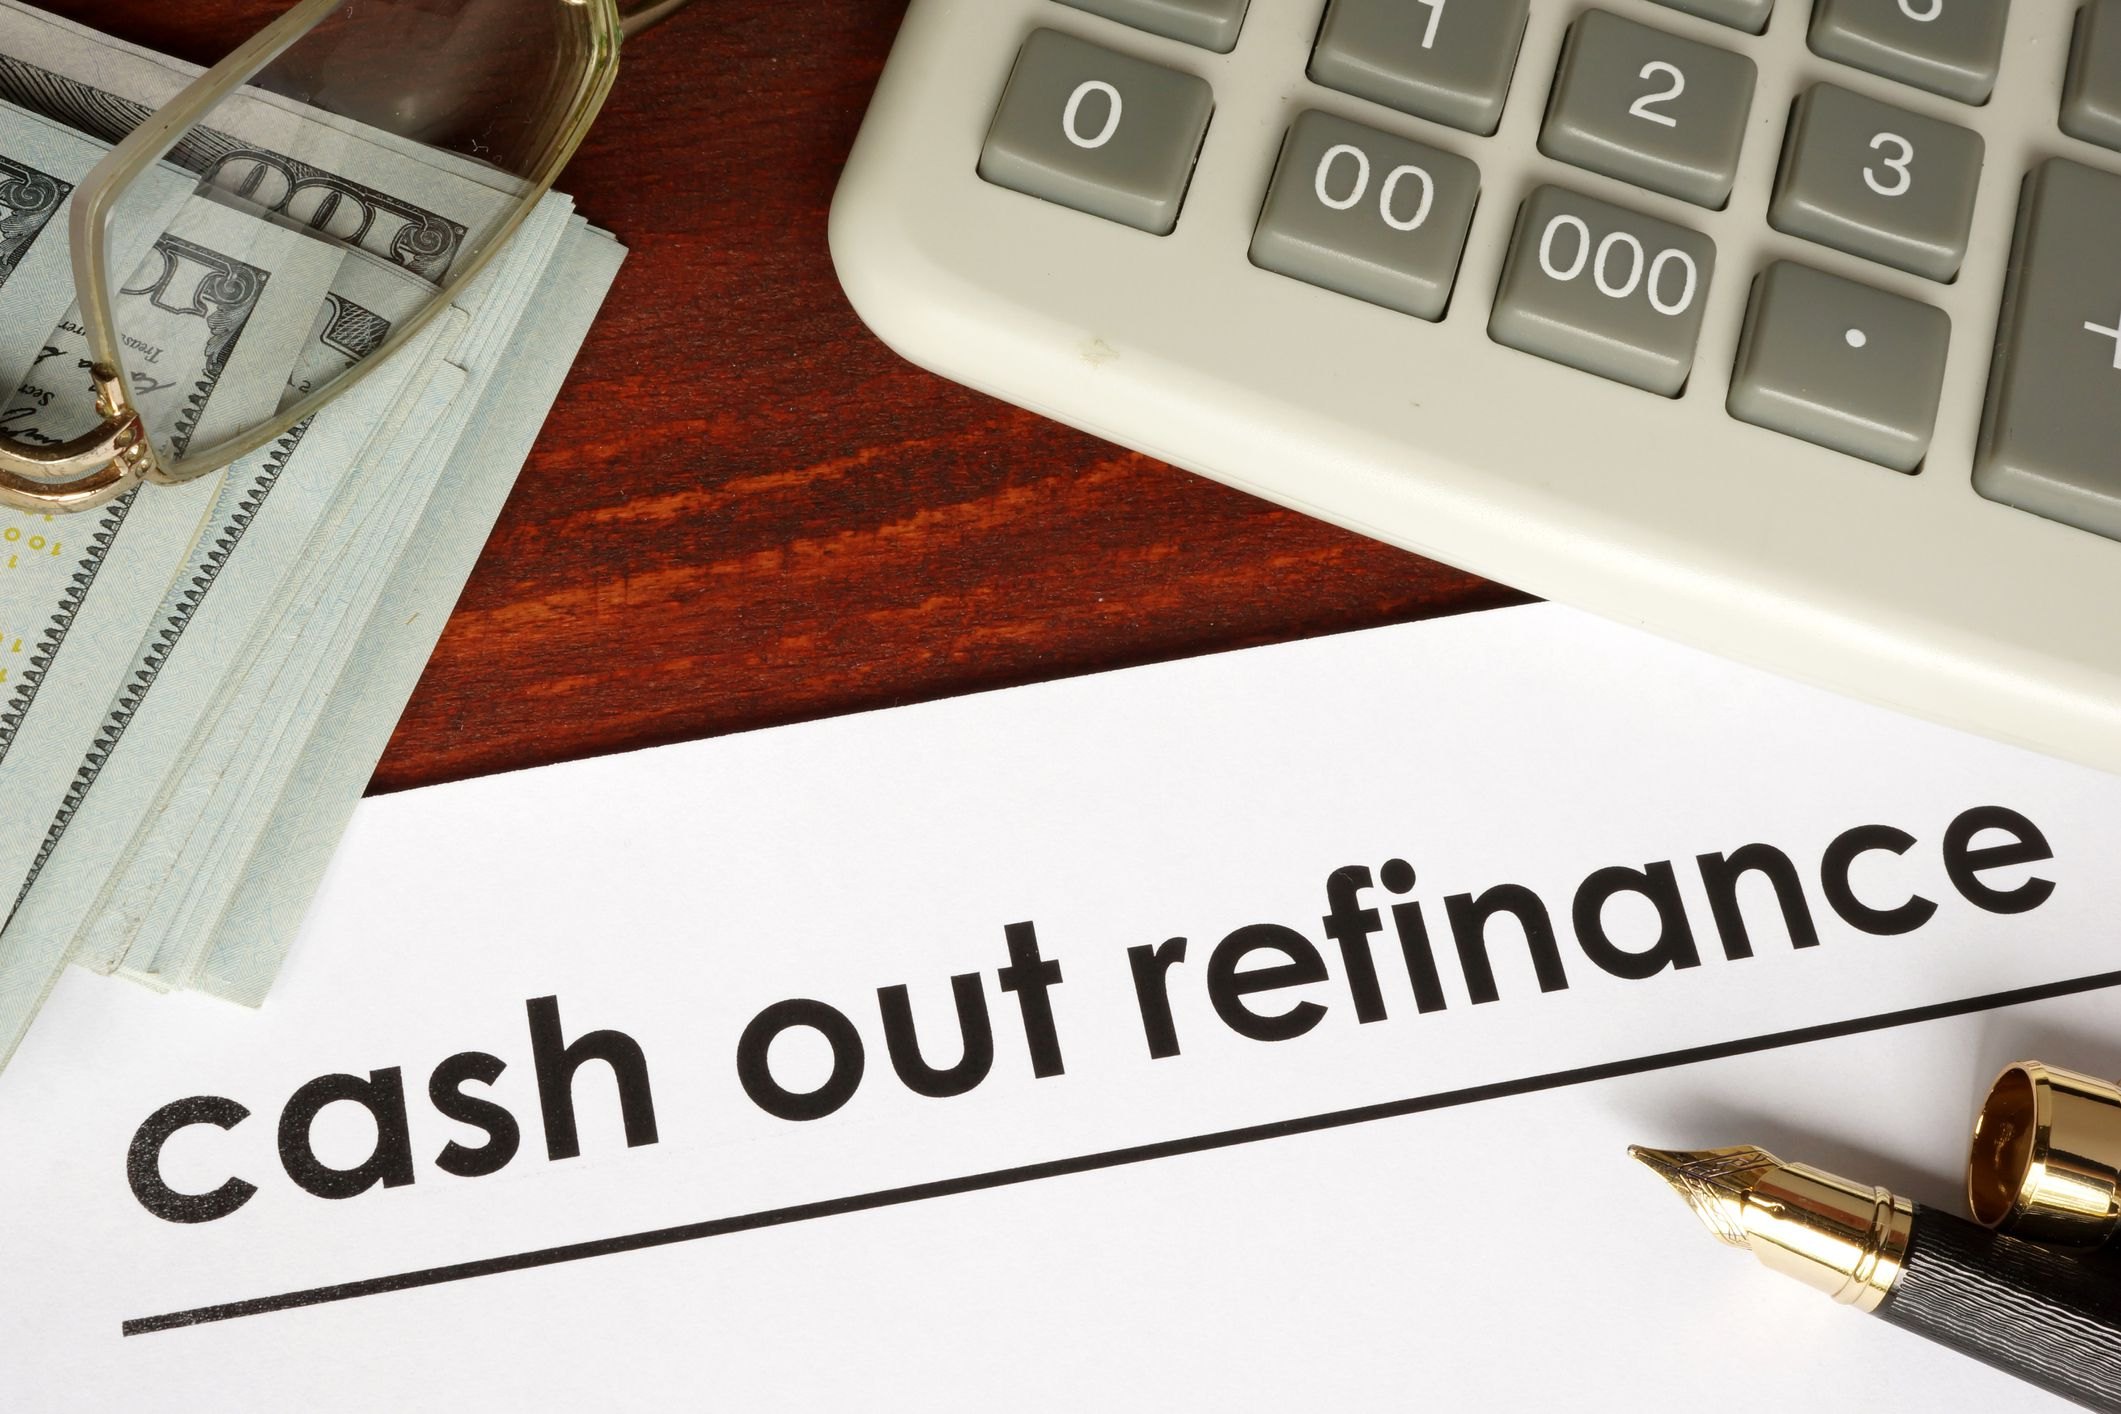 Cash-Out Refinance Definition